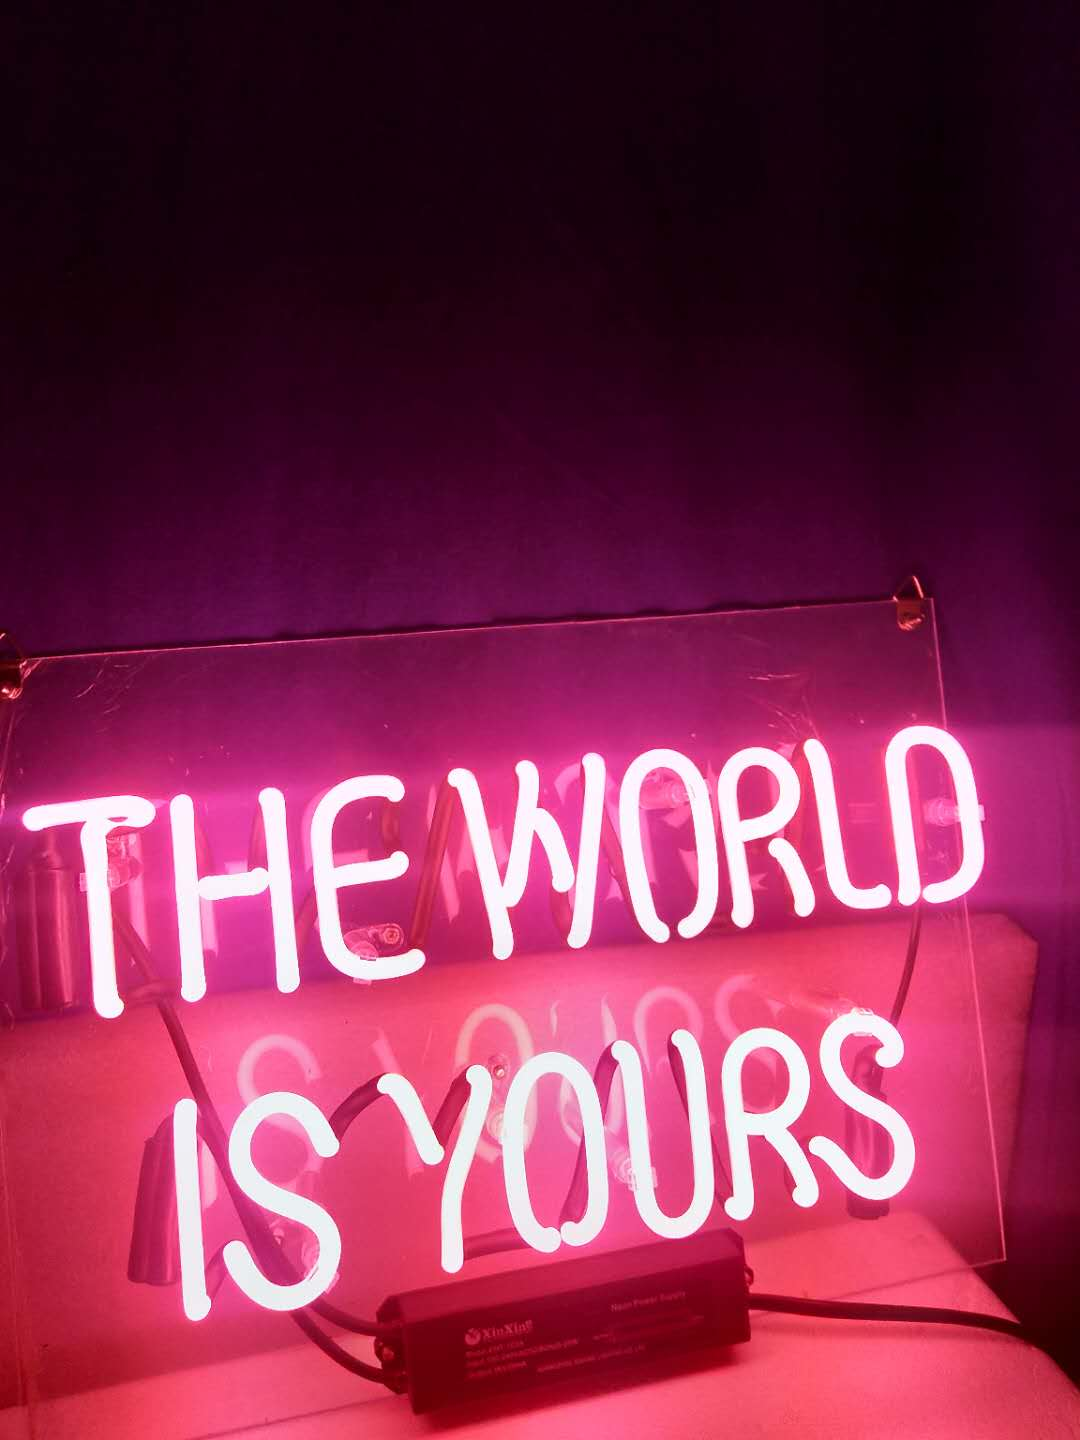 Details About New The World Is Yours Pink Neon Light Sign Beer Bar Home Wall Display Gifts